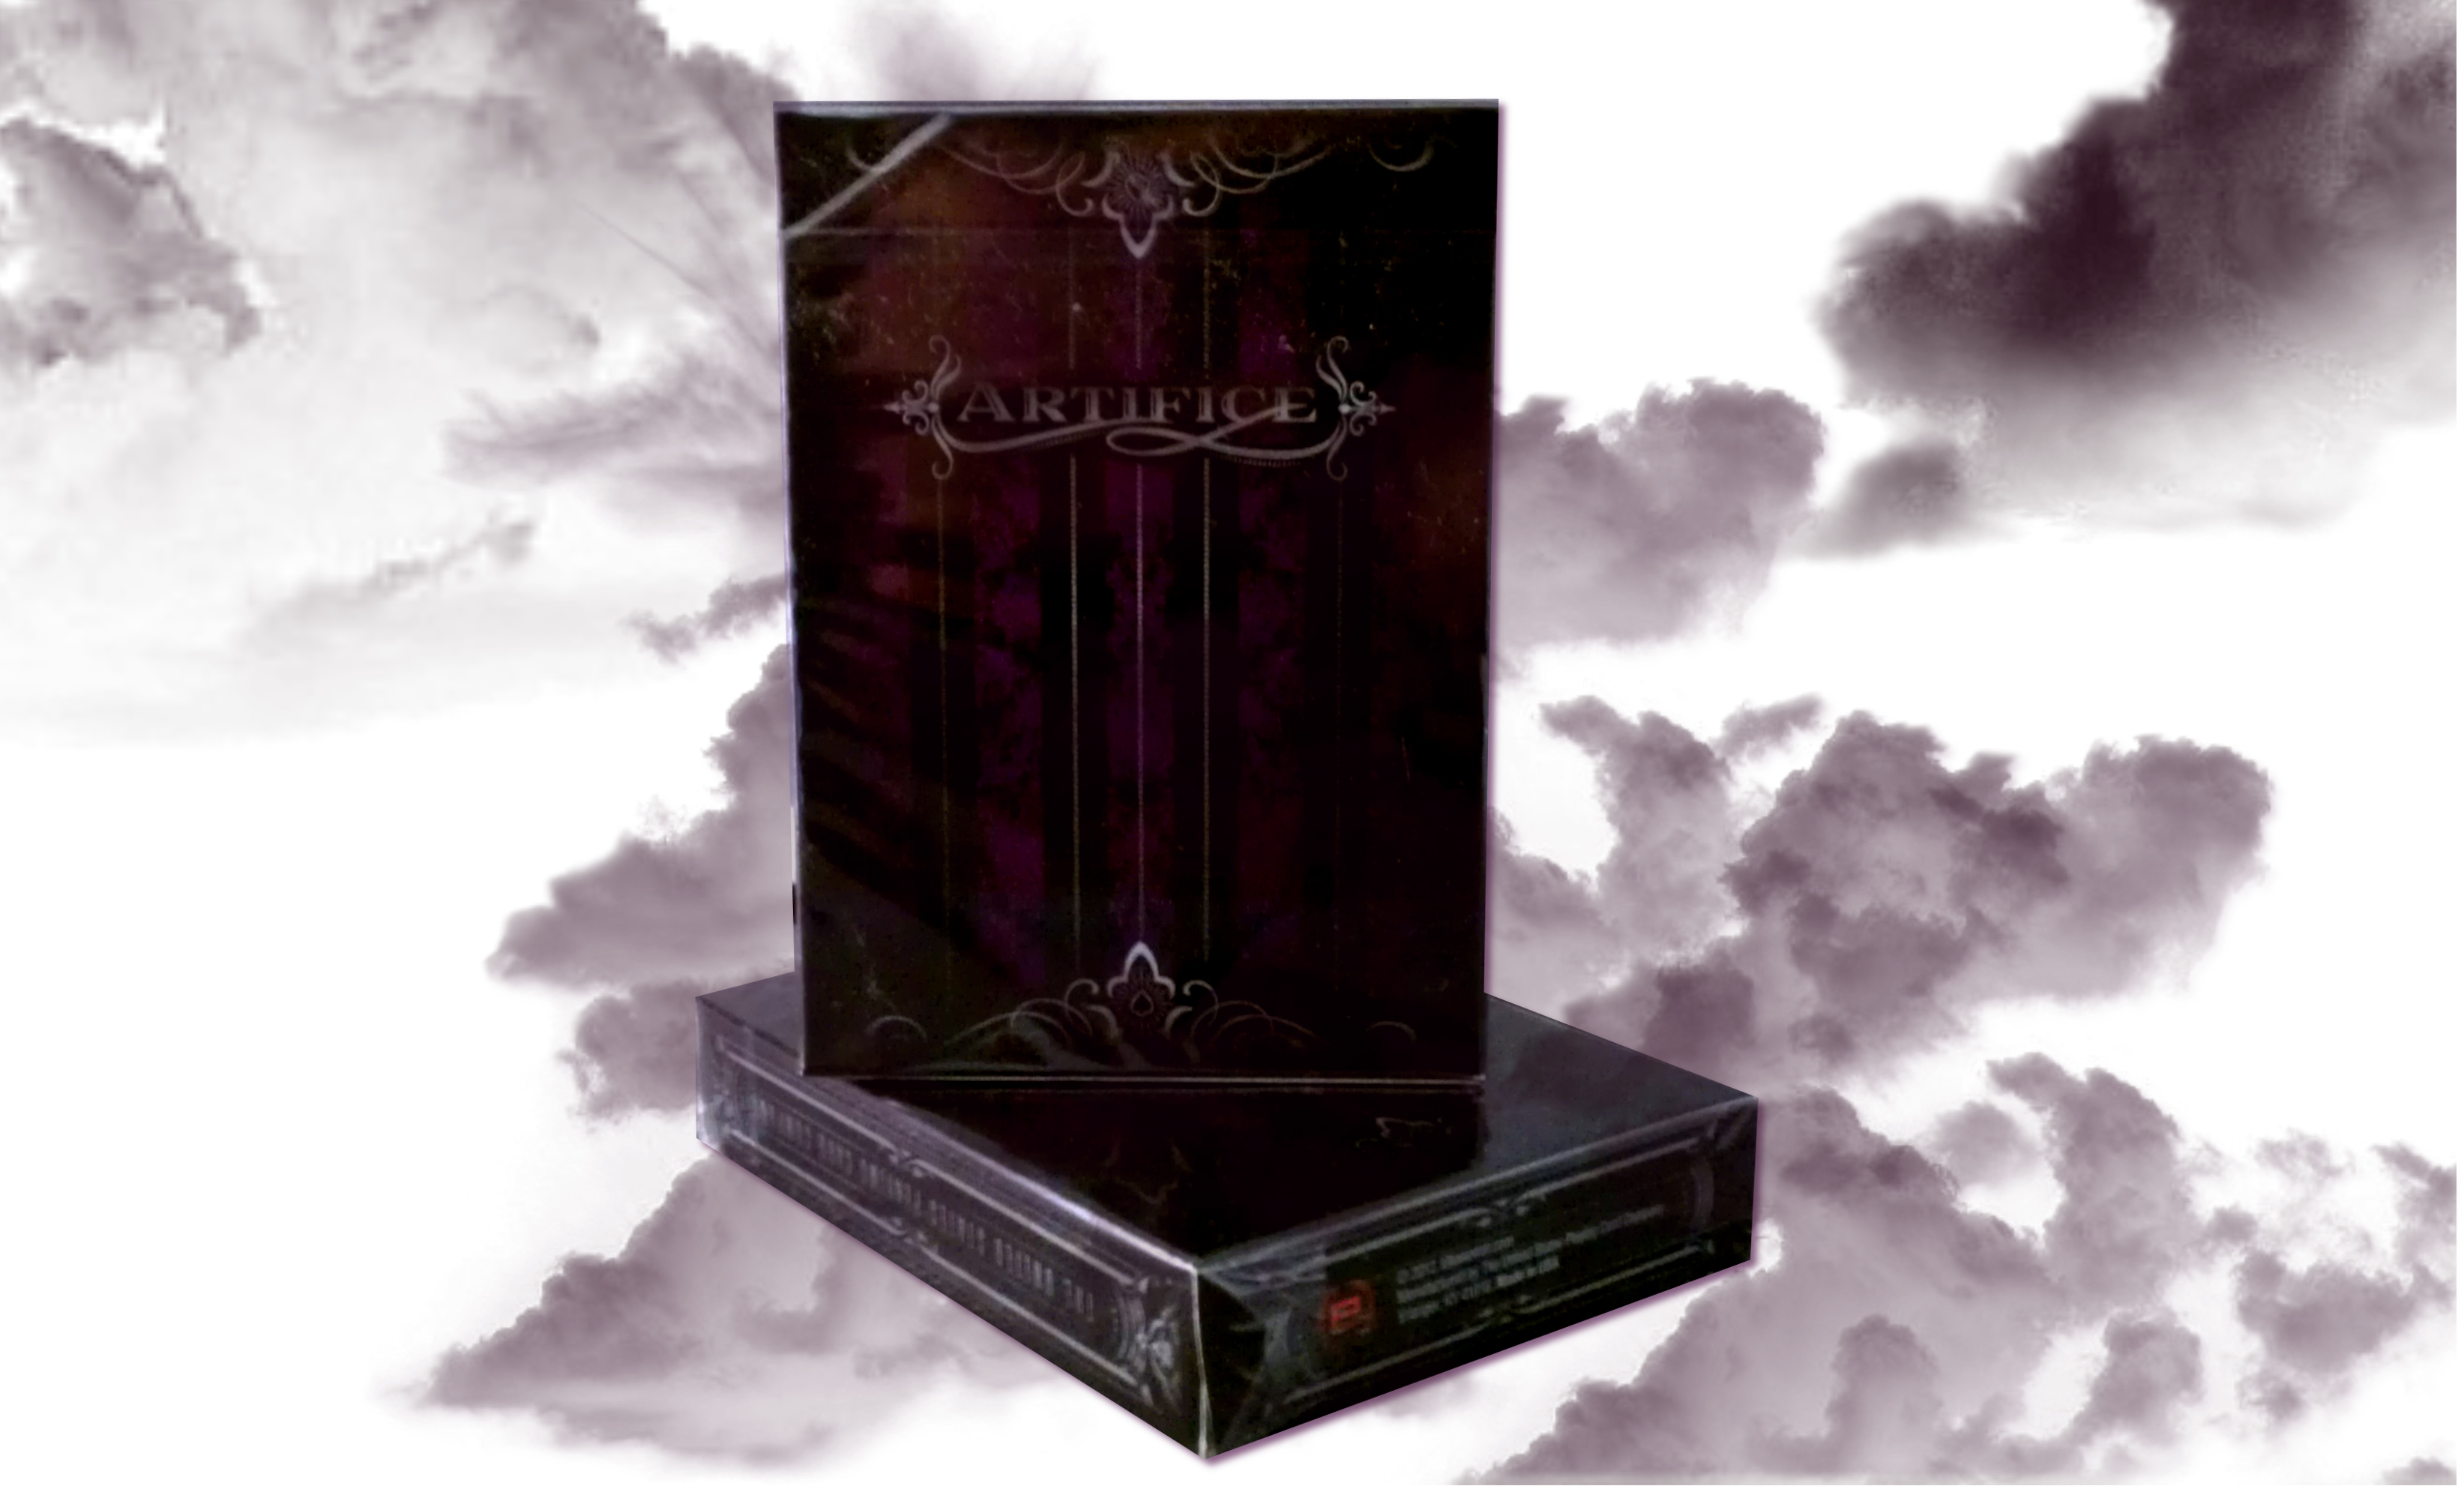 Artifice Deck - Performance Coated Playing Cards (2nd Edition) by Ellusionist - Purple magic cards, magic tricks